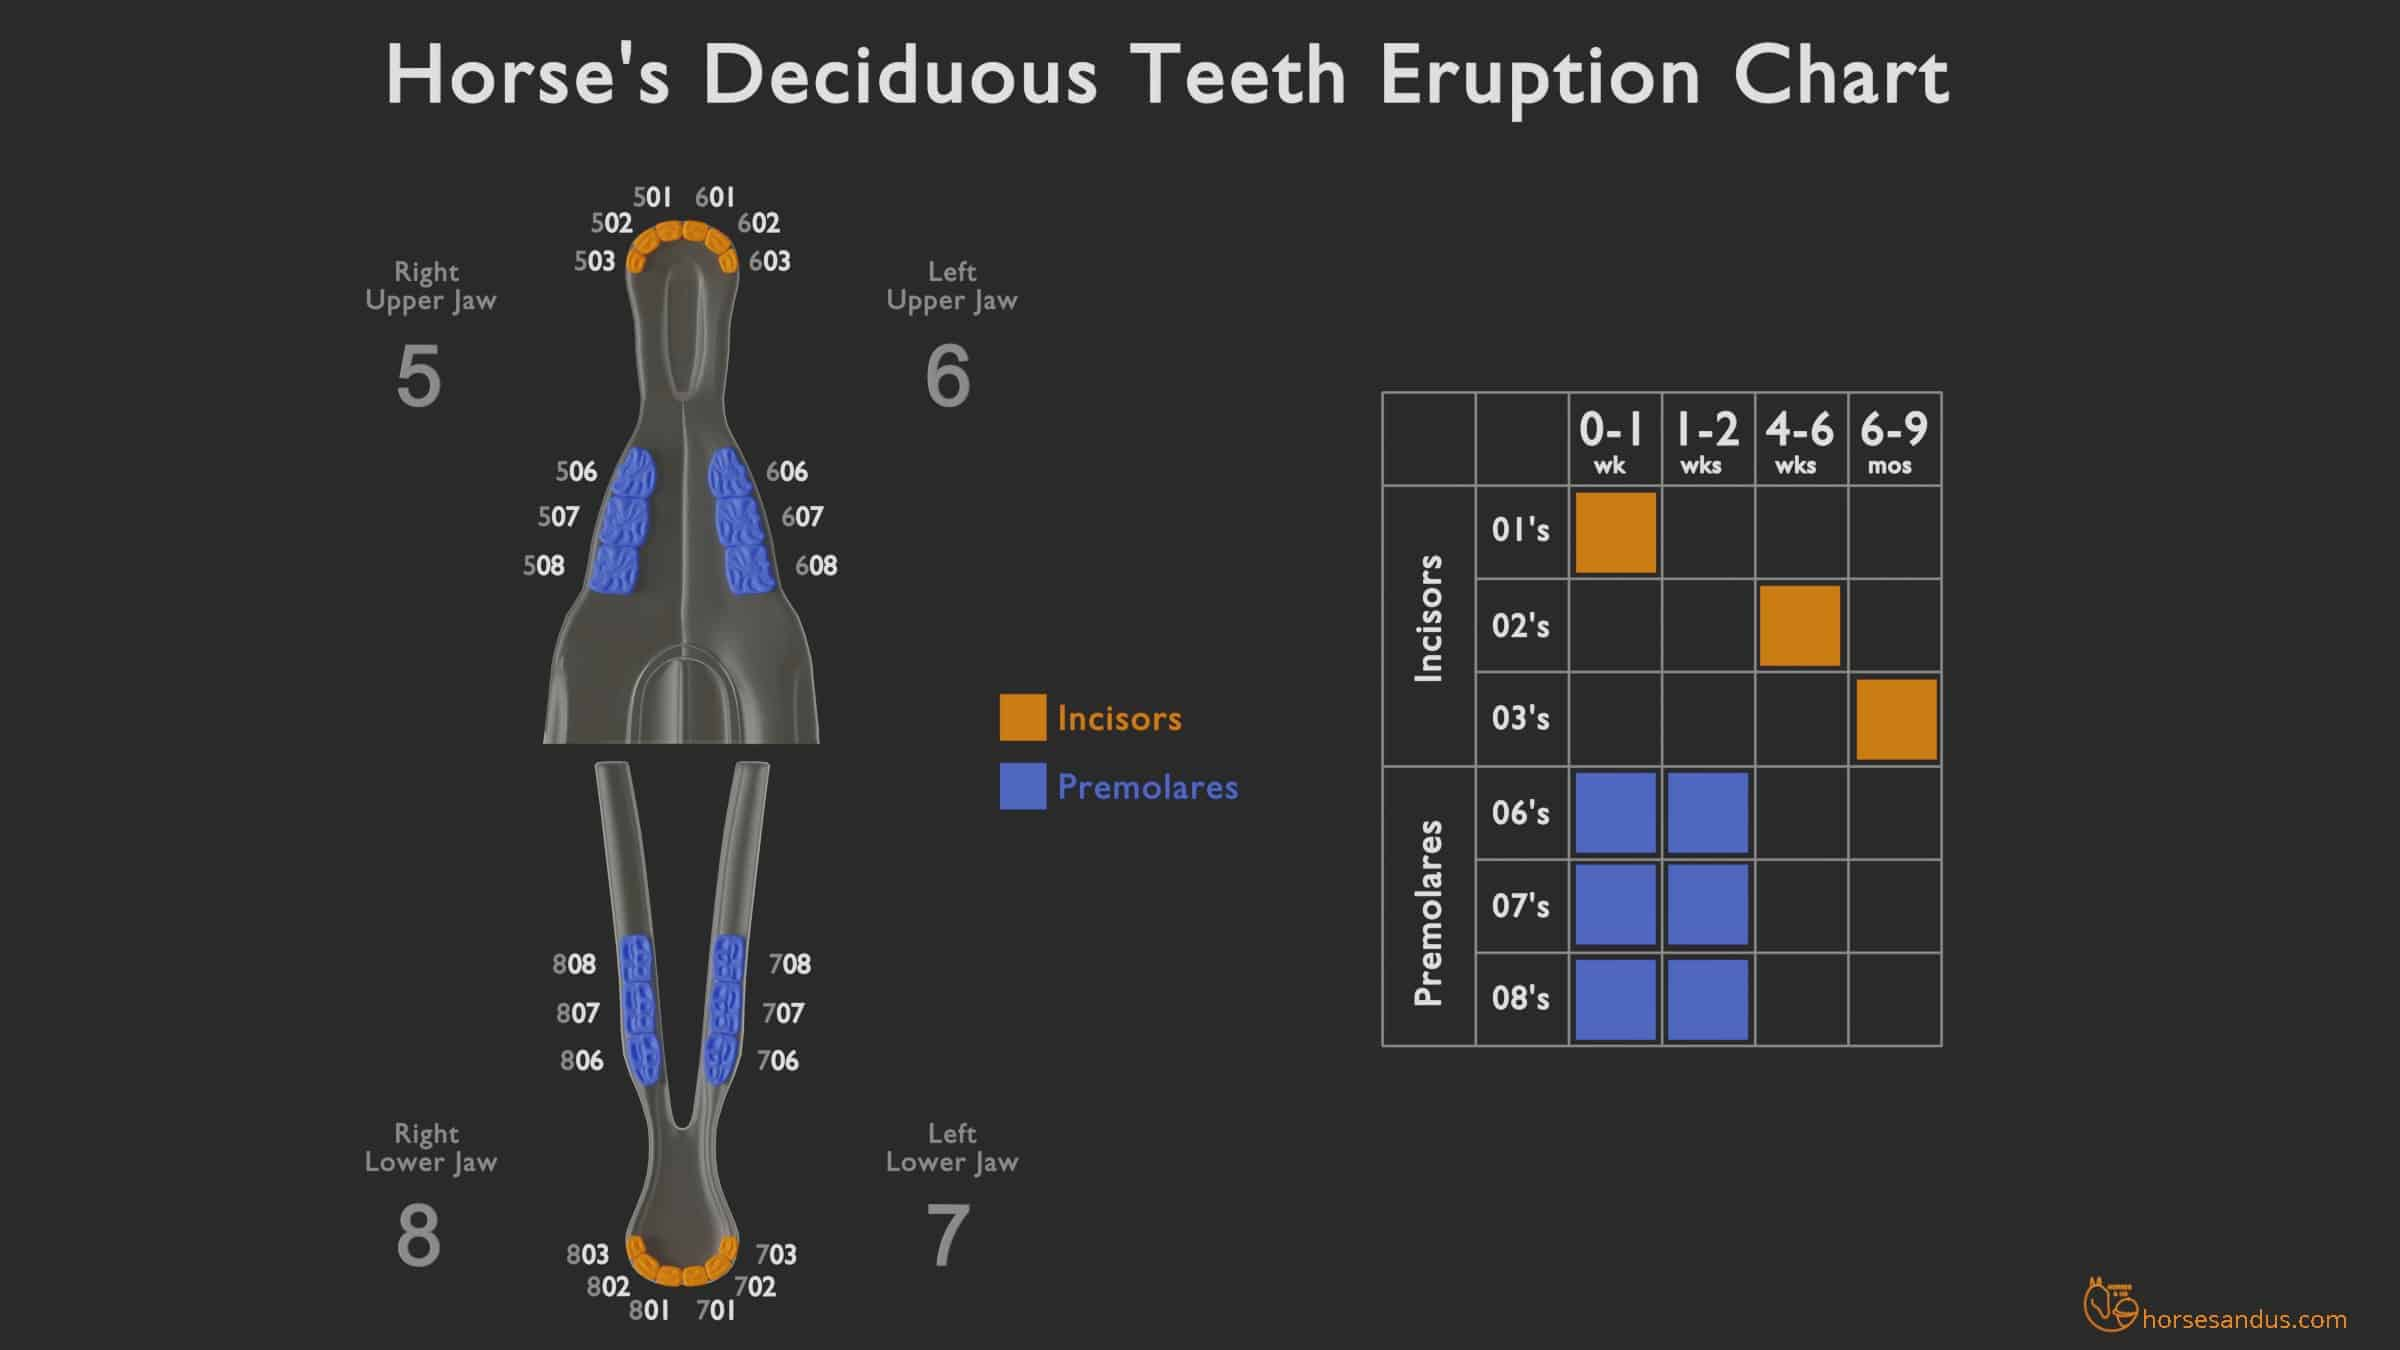 ging a horse by his teeth - Deciduous teeth eruption chart